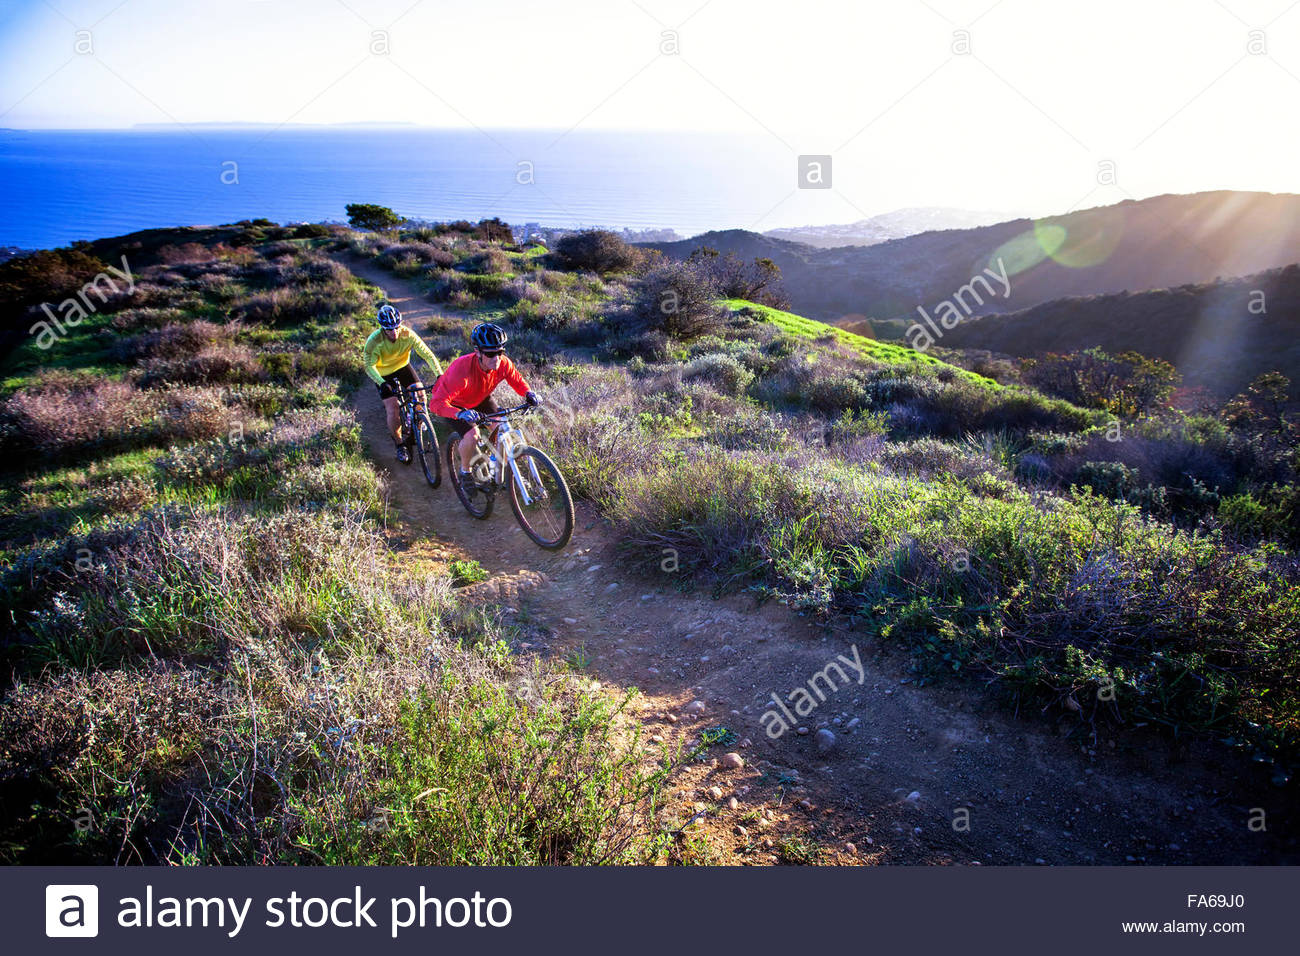 Two men mountain biking, California, America, USA - Stock Image